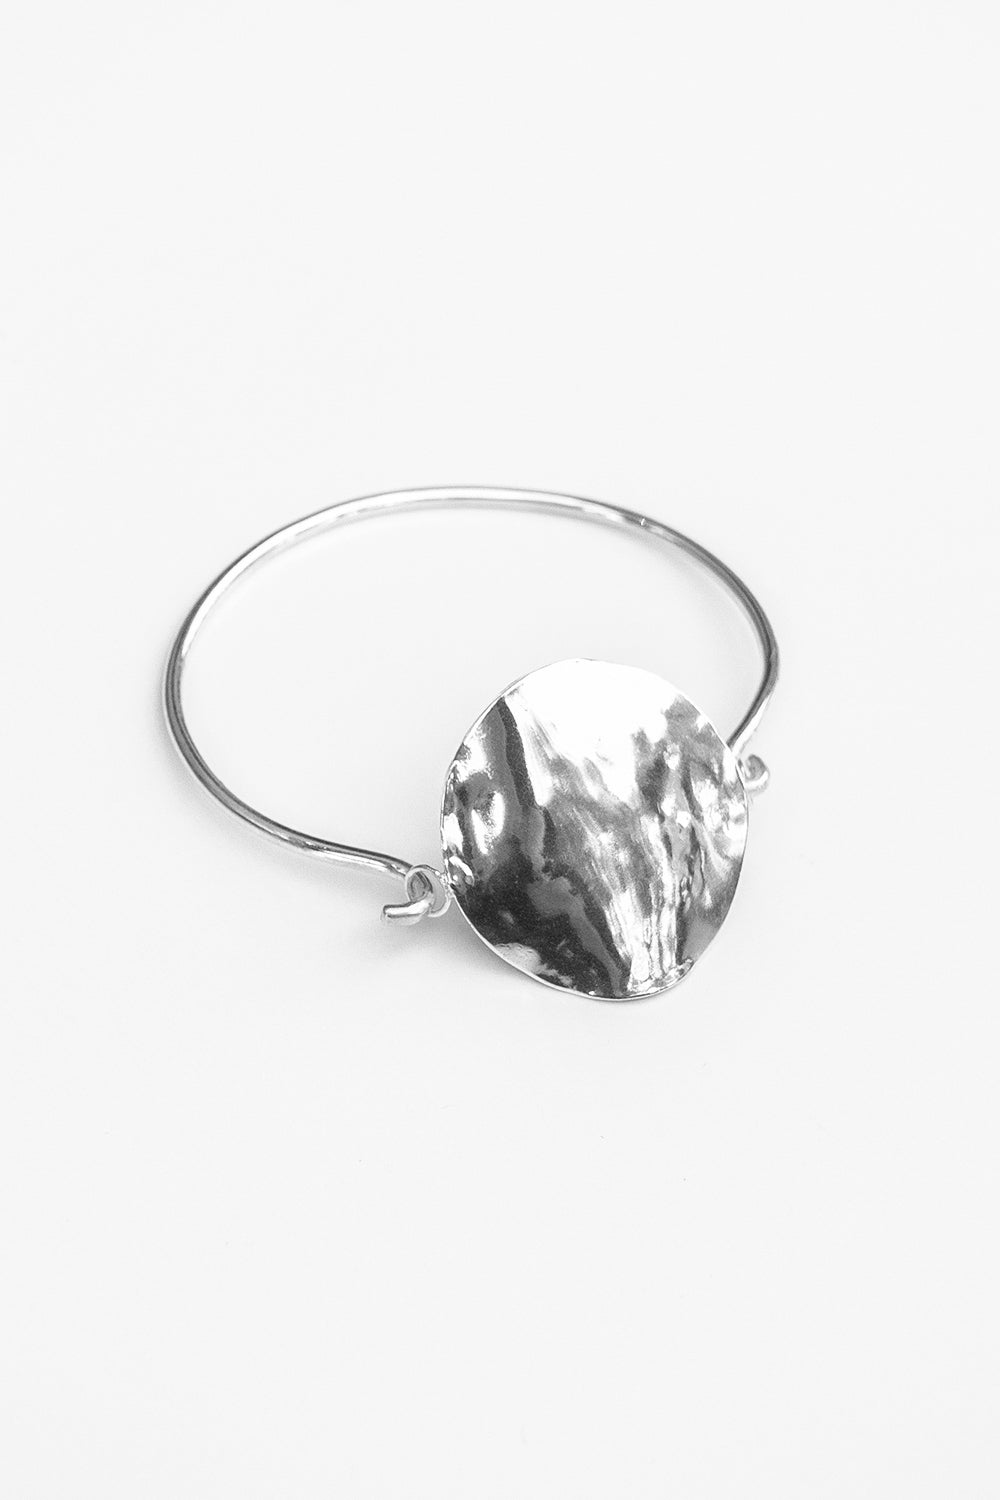 SUSAN DRIVER - Moonlight Full Moon Bangle - Australian Fashion and Accessories Boutique - Faid Store